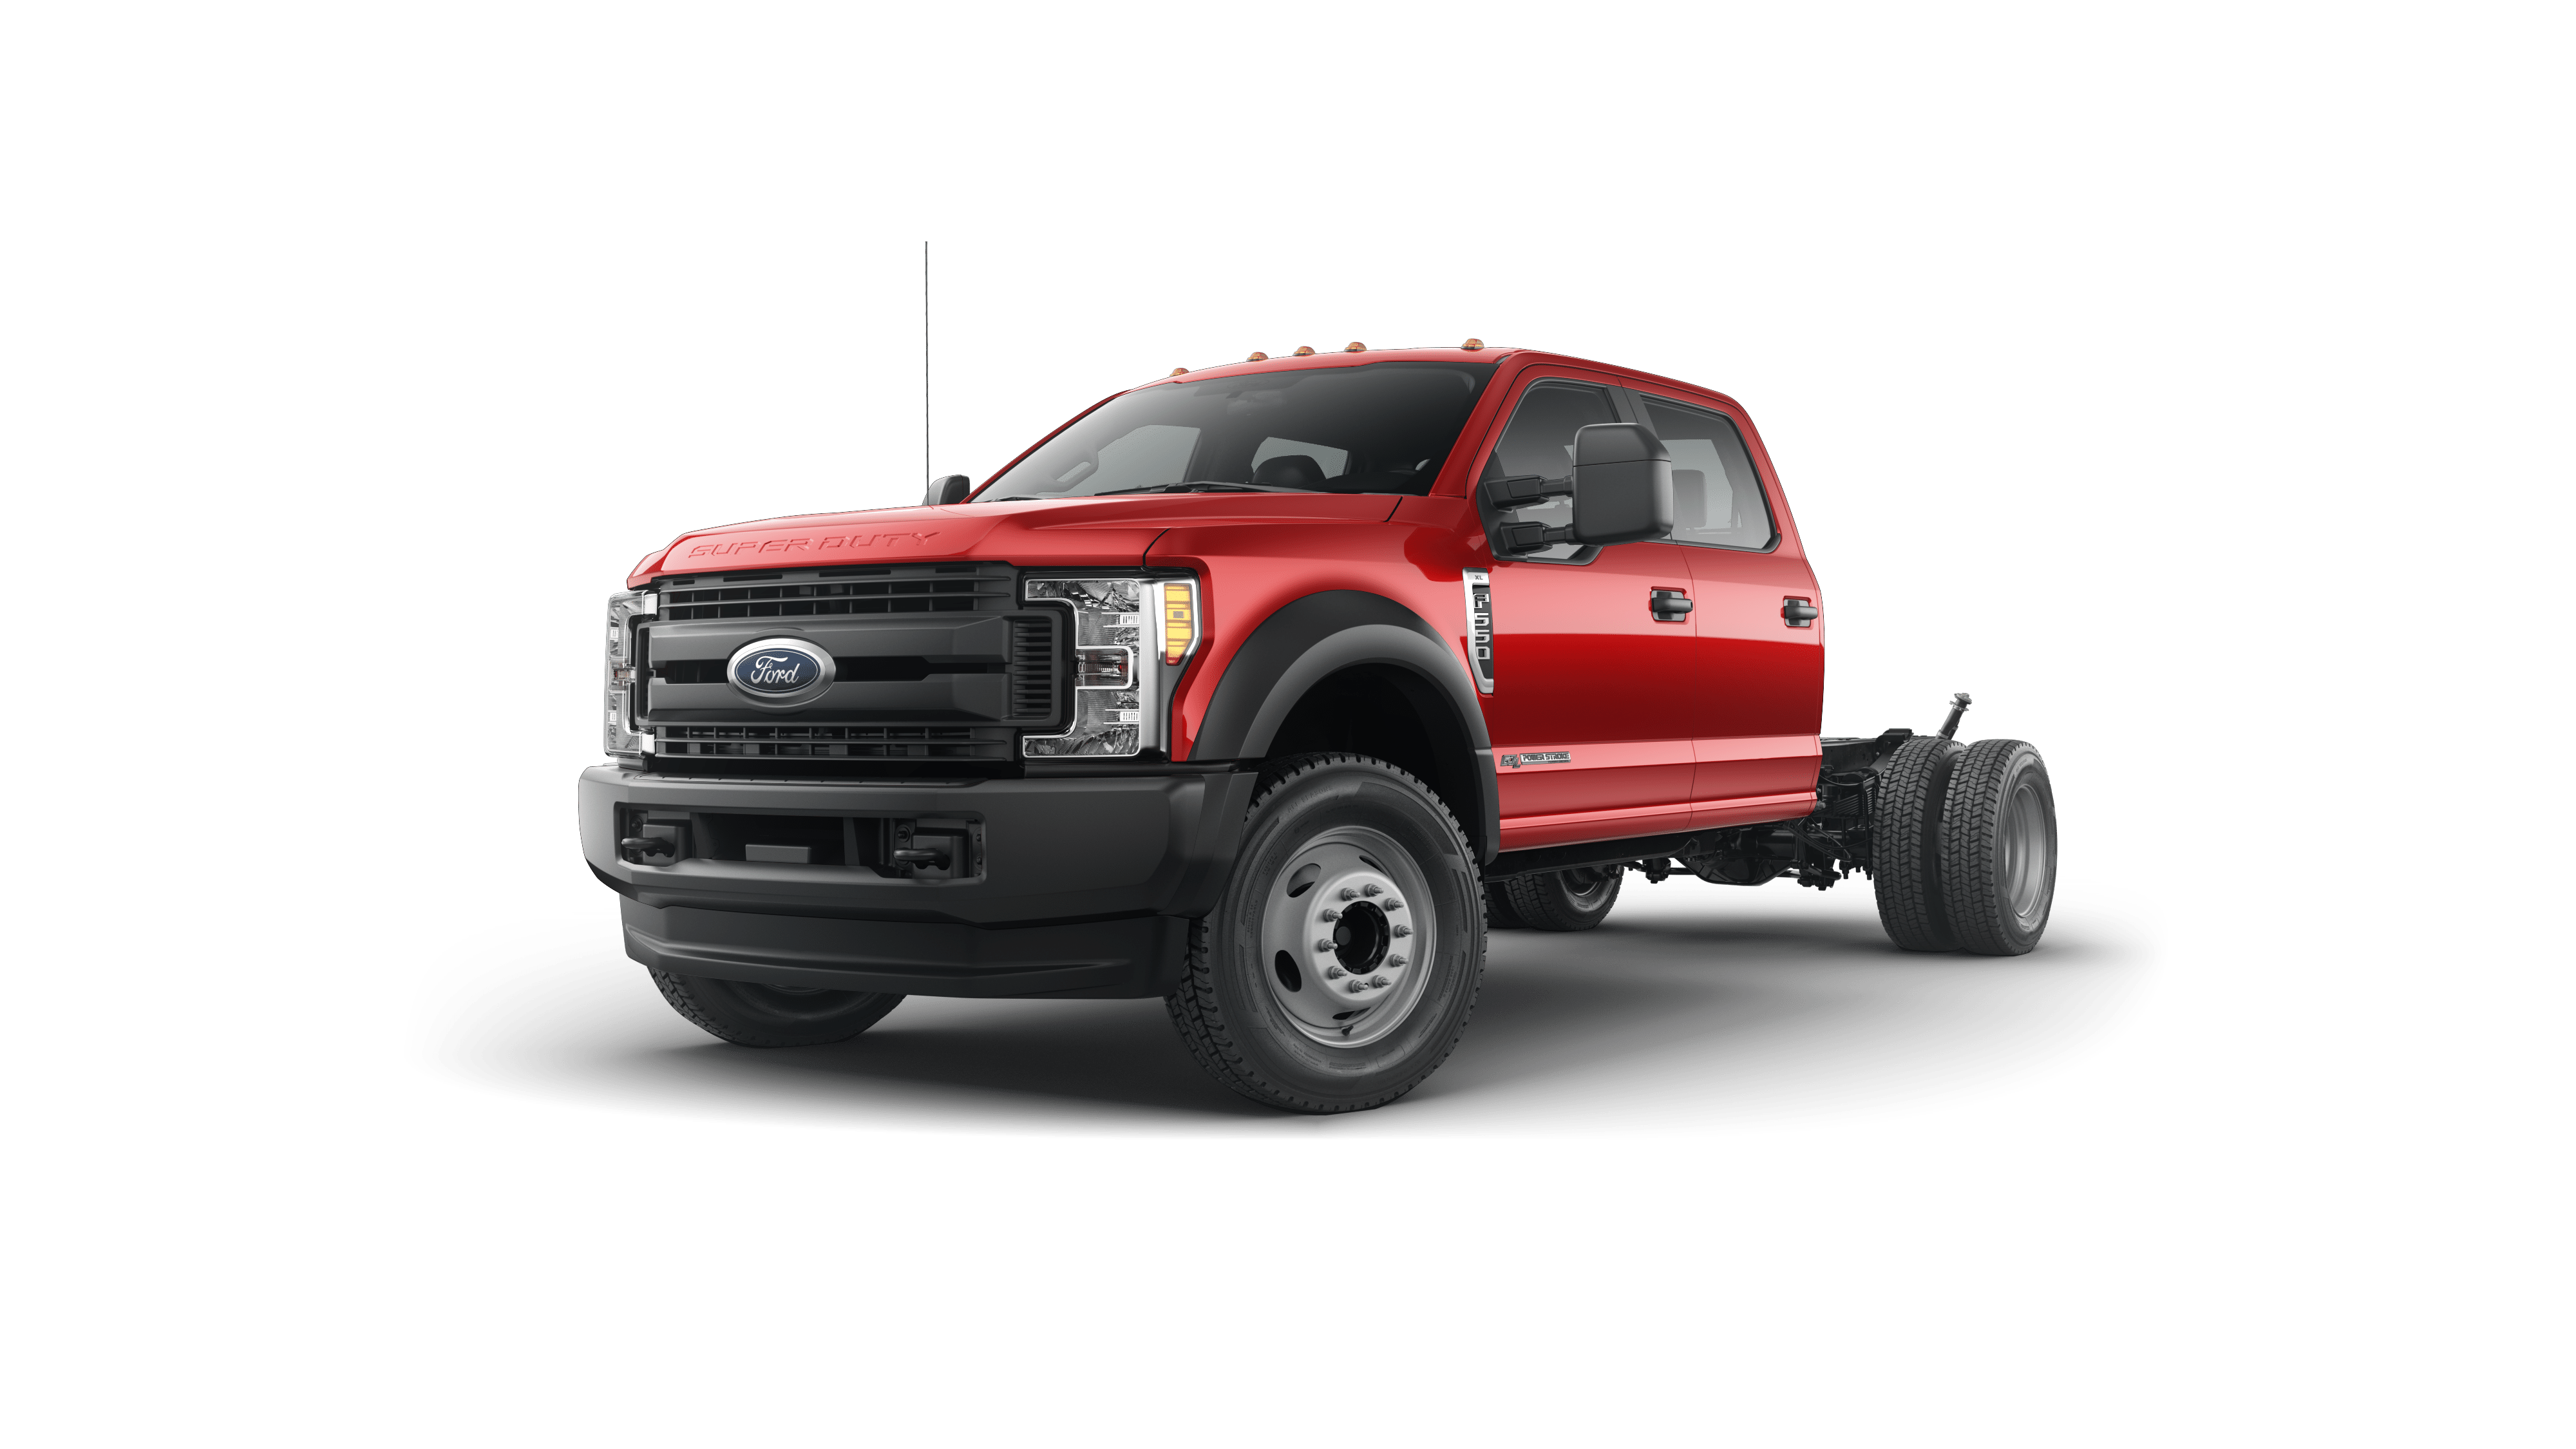 2019 ford super duty f 550 drw vehicle photo in luverne mn 561561902